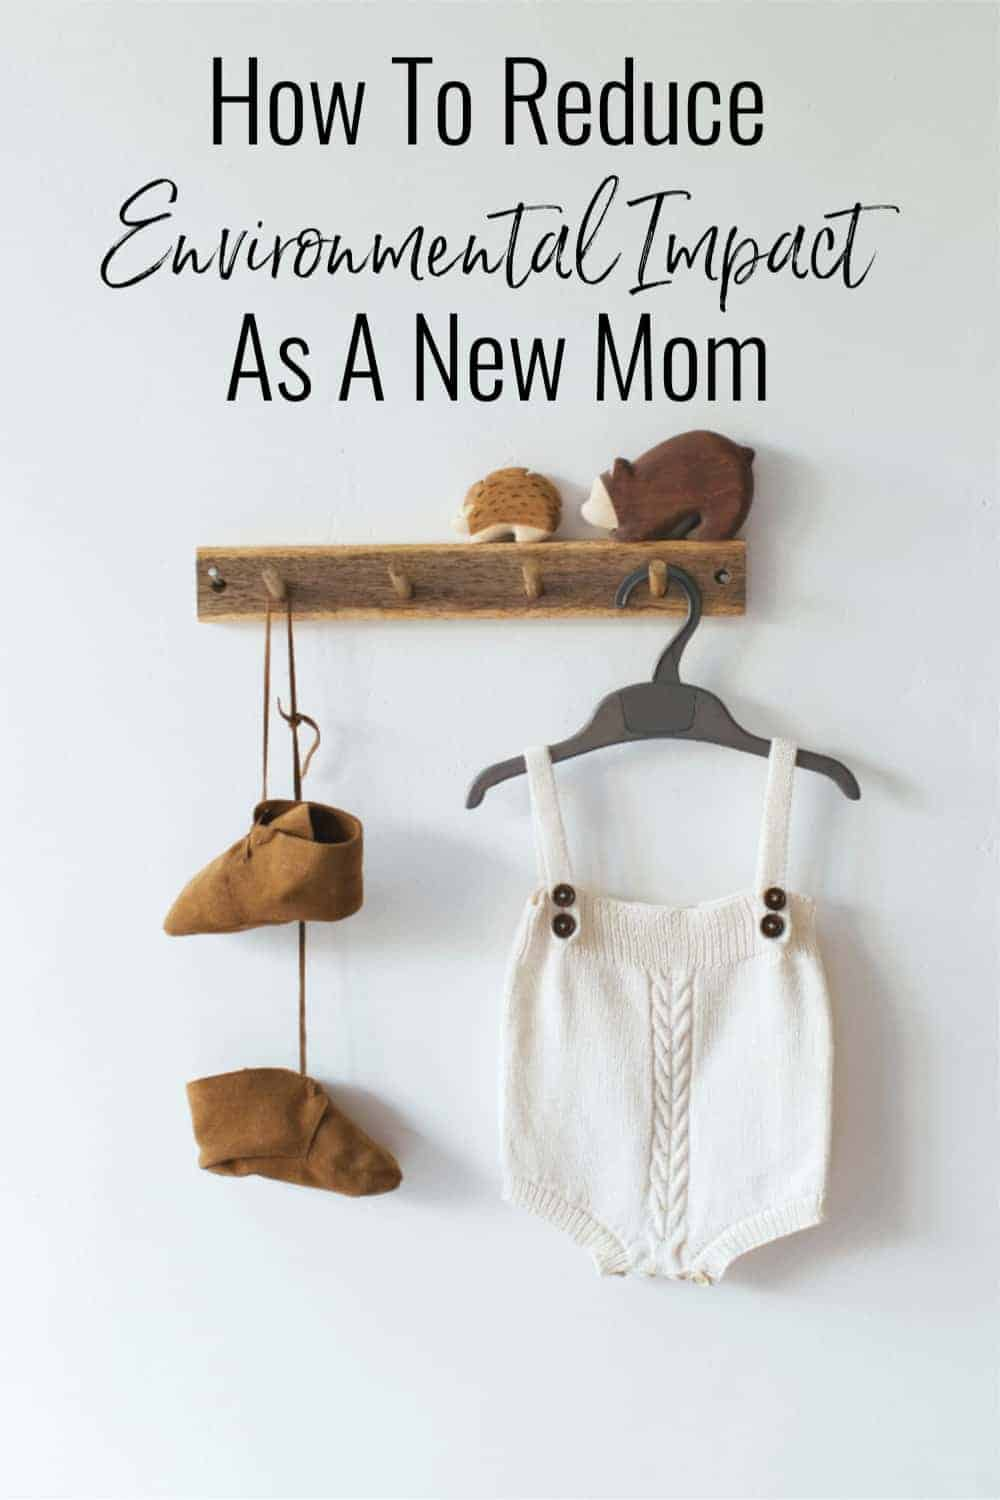 How to Reduce Environmental Impact as a New Mom